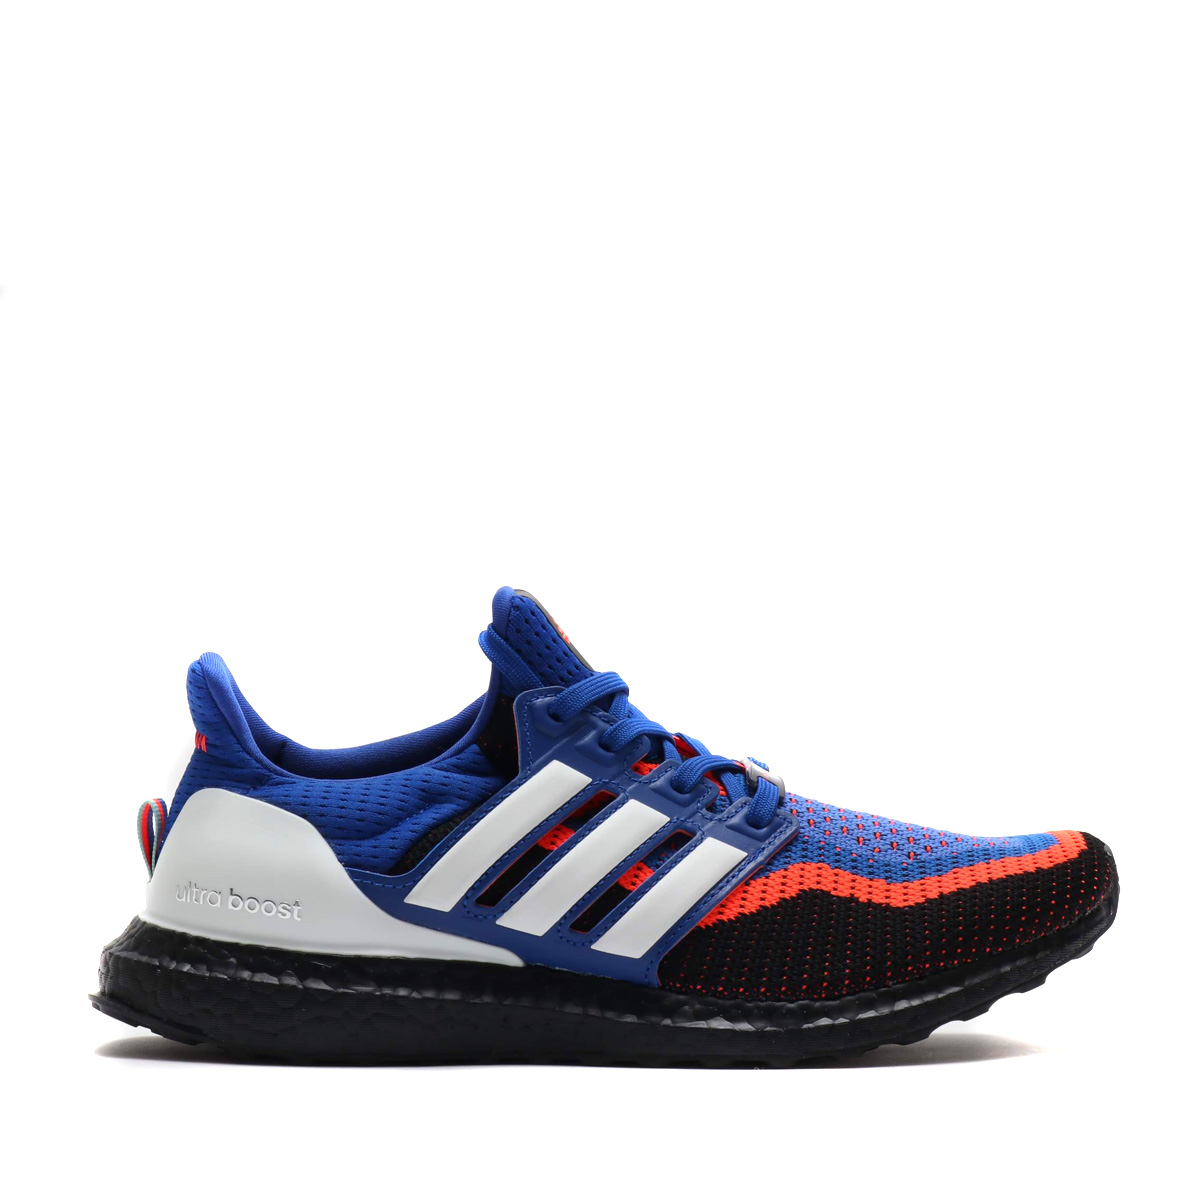 separation shoes 283f9 aa46c adidas UltraBOOST (COLLEGIATE ROYAL/FTWR WHITE/SOLAR RED) (Adidas ultra  boost)